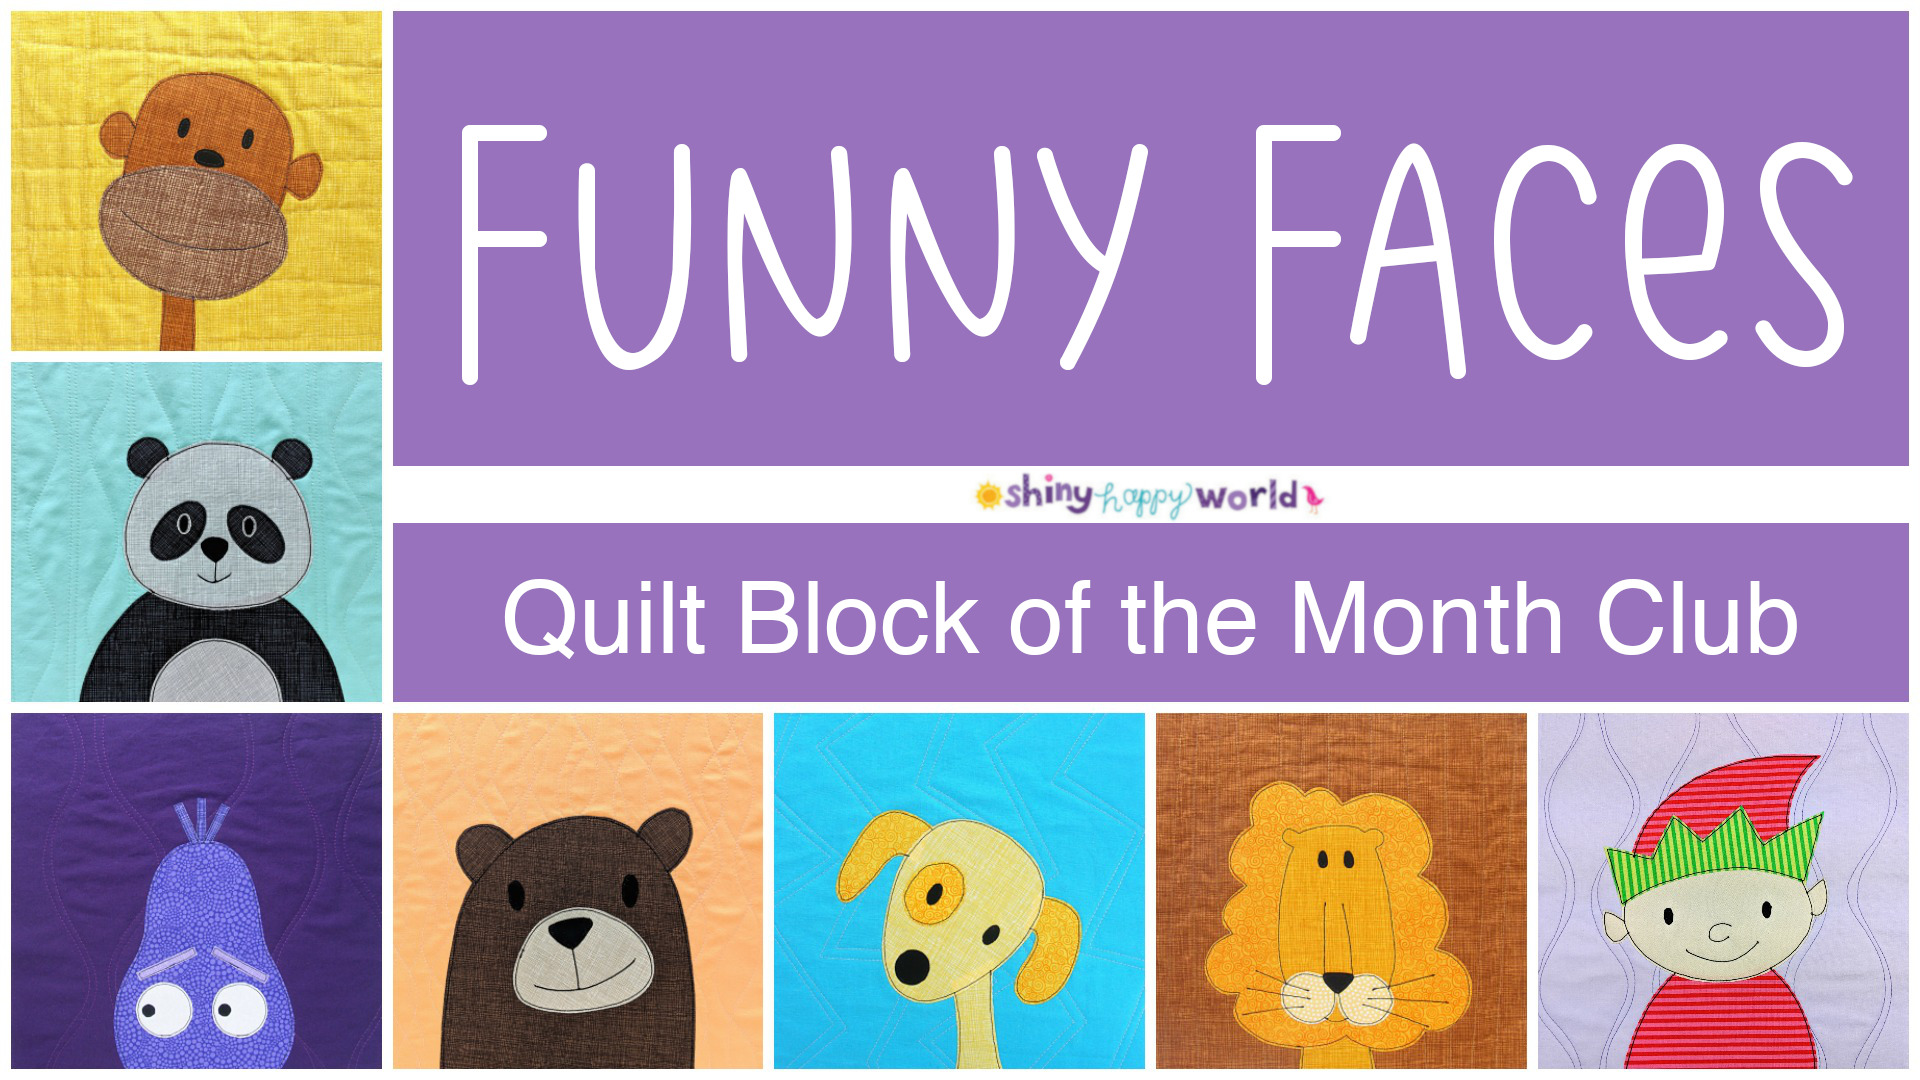 Quilt Block Of The Month Club Com.Funny Faces Quilt Block Of The Month Club Mp4